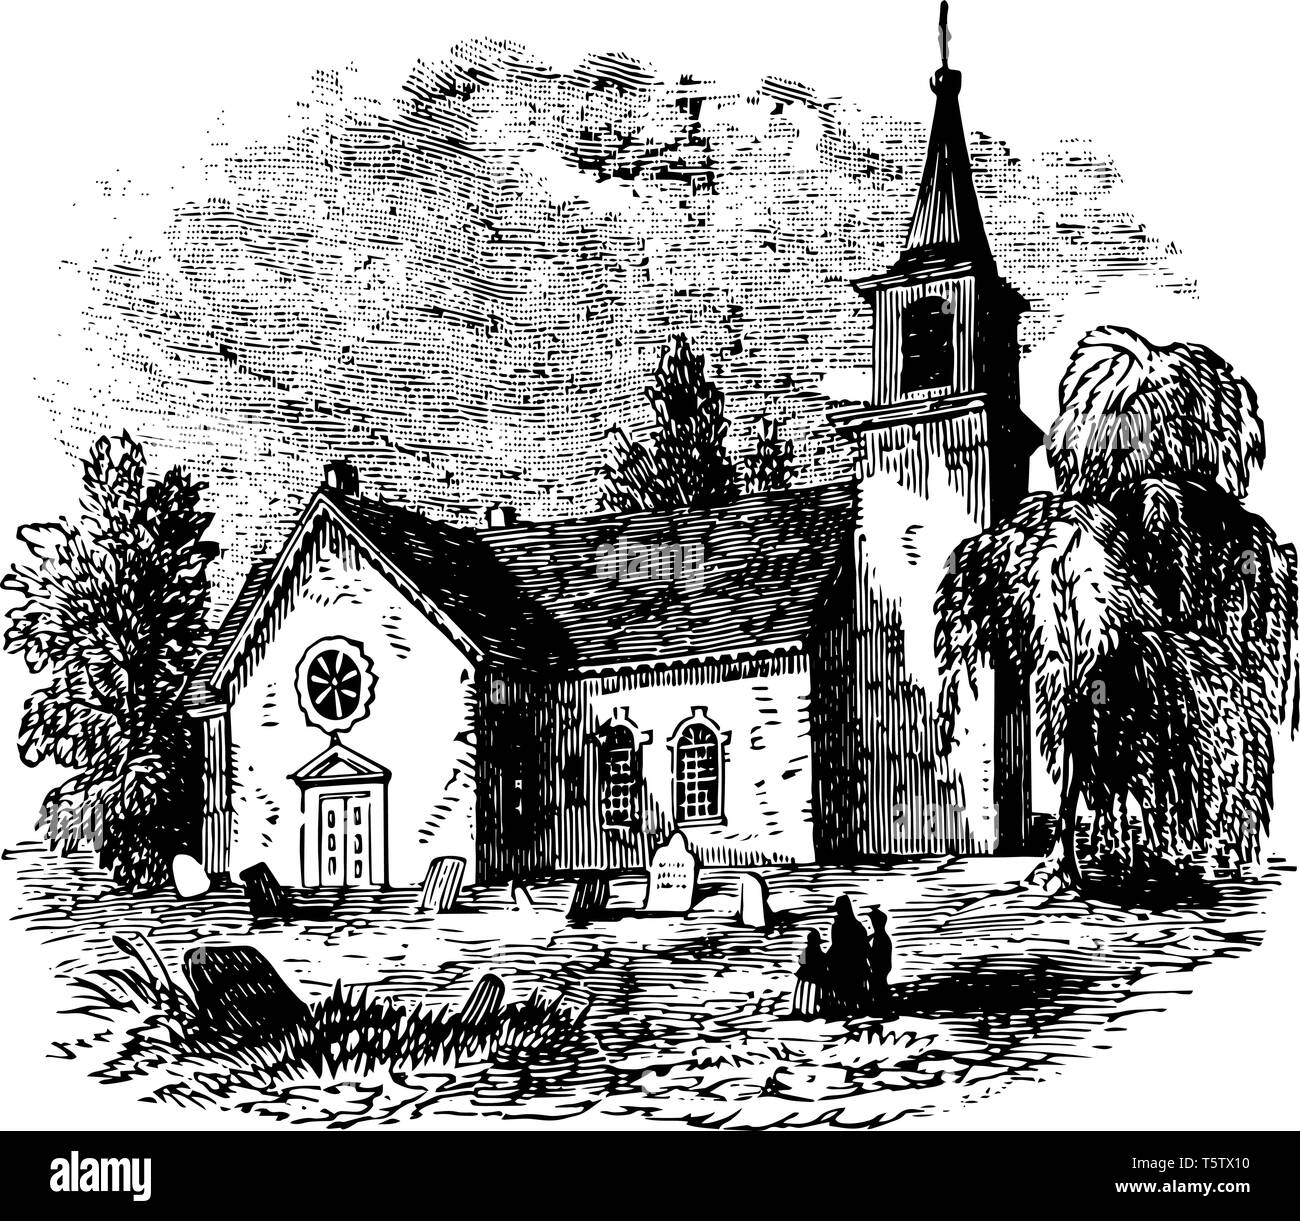 St Martin to in to the to Fields is an English Anglican church at the north to east corner of Trafalgar Square in the City of Westminster. It is dedic - Stock Vector